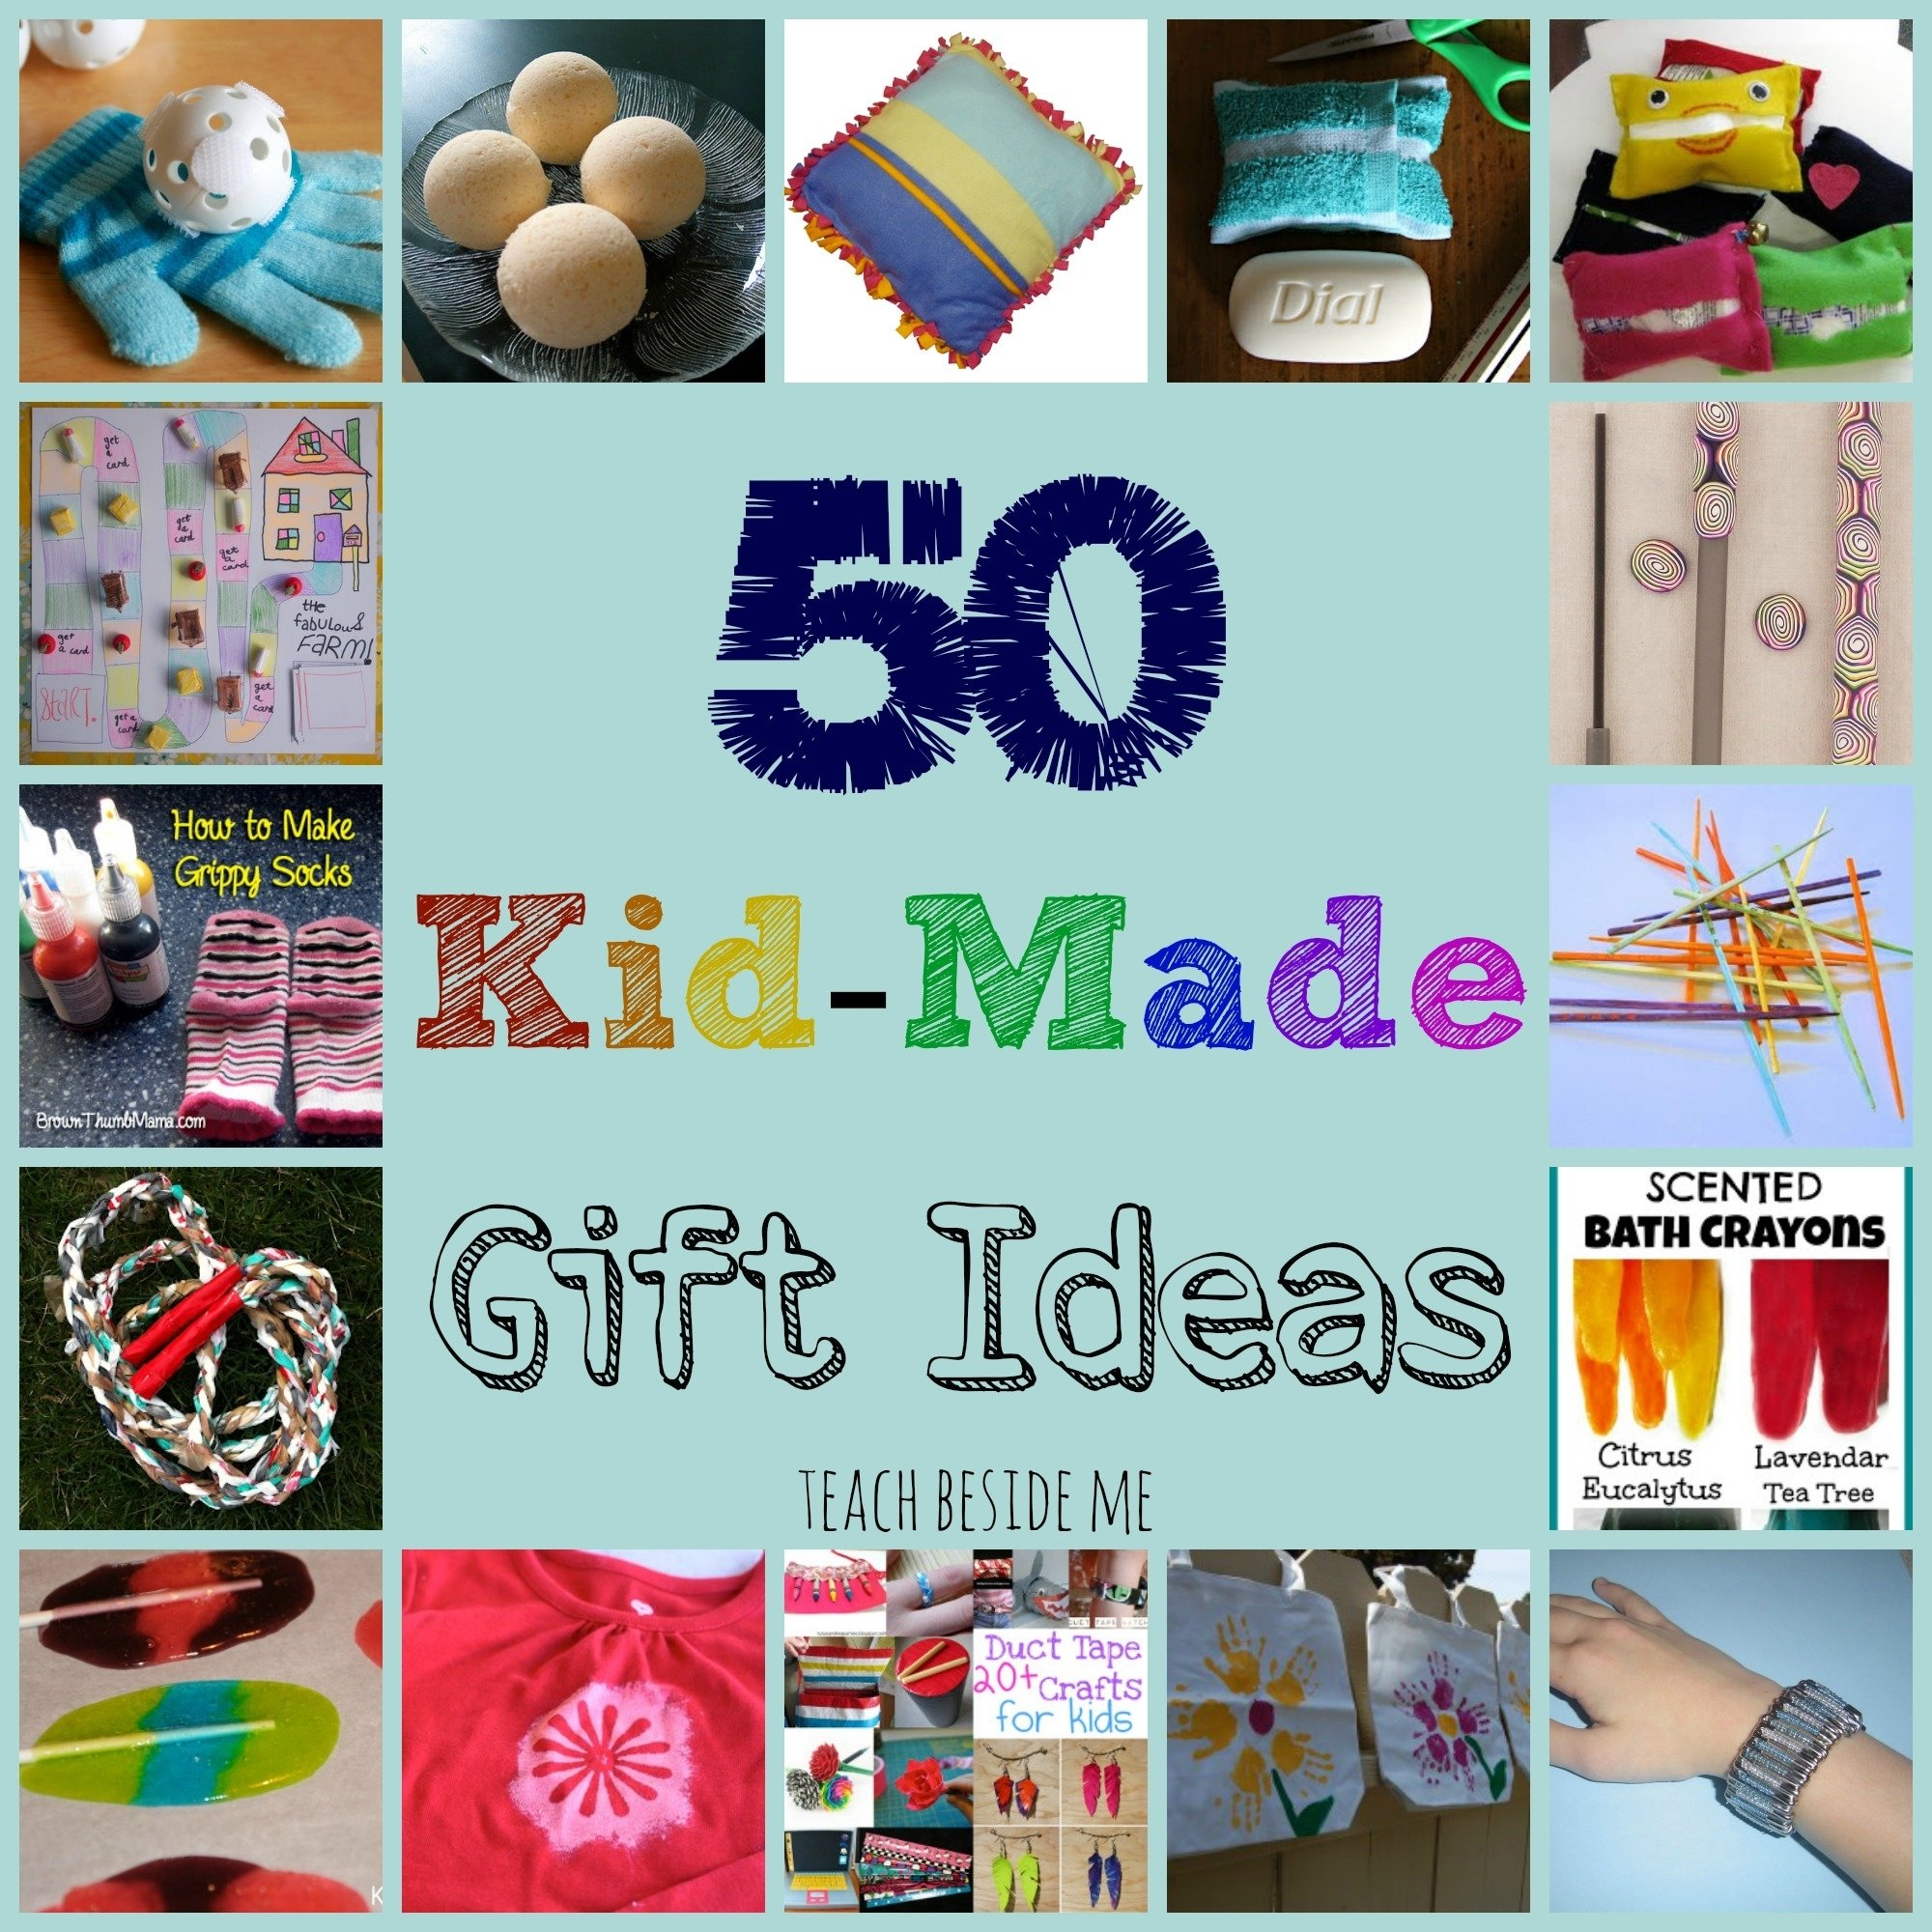 10 Most Popular Gift Ideas For Kids To Make kid made gift ideas for family teach beside me 7 2021